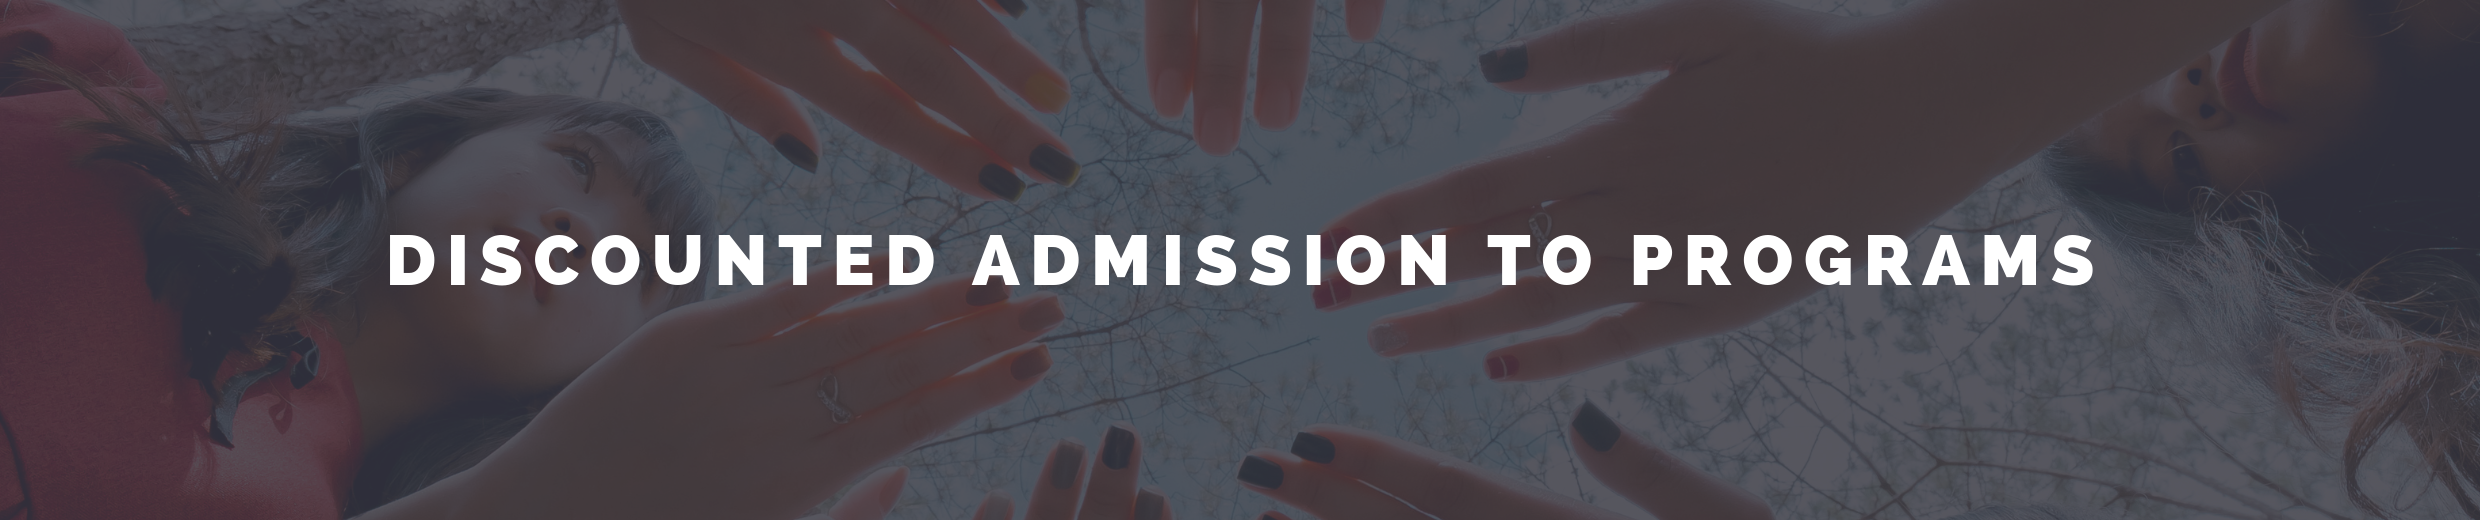 discounted admission